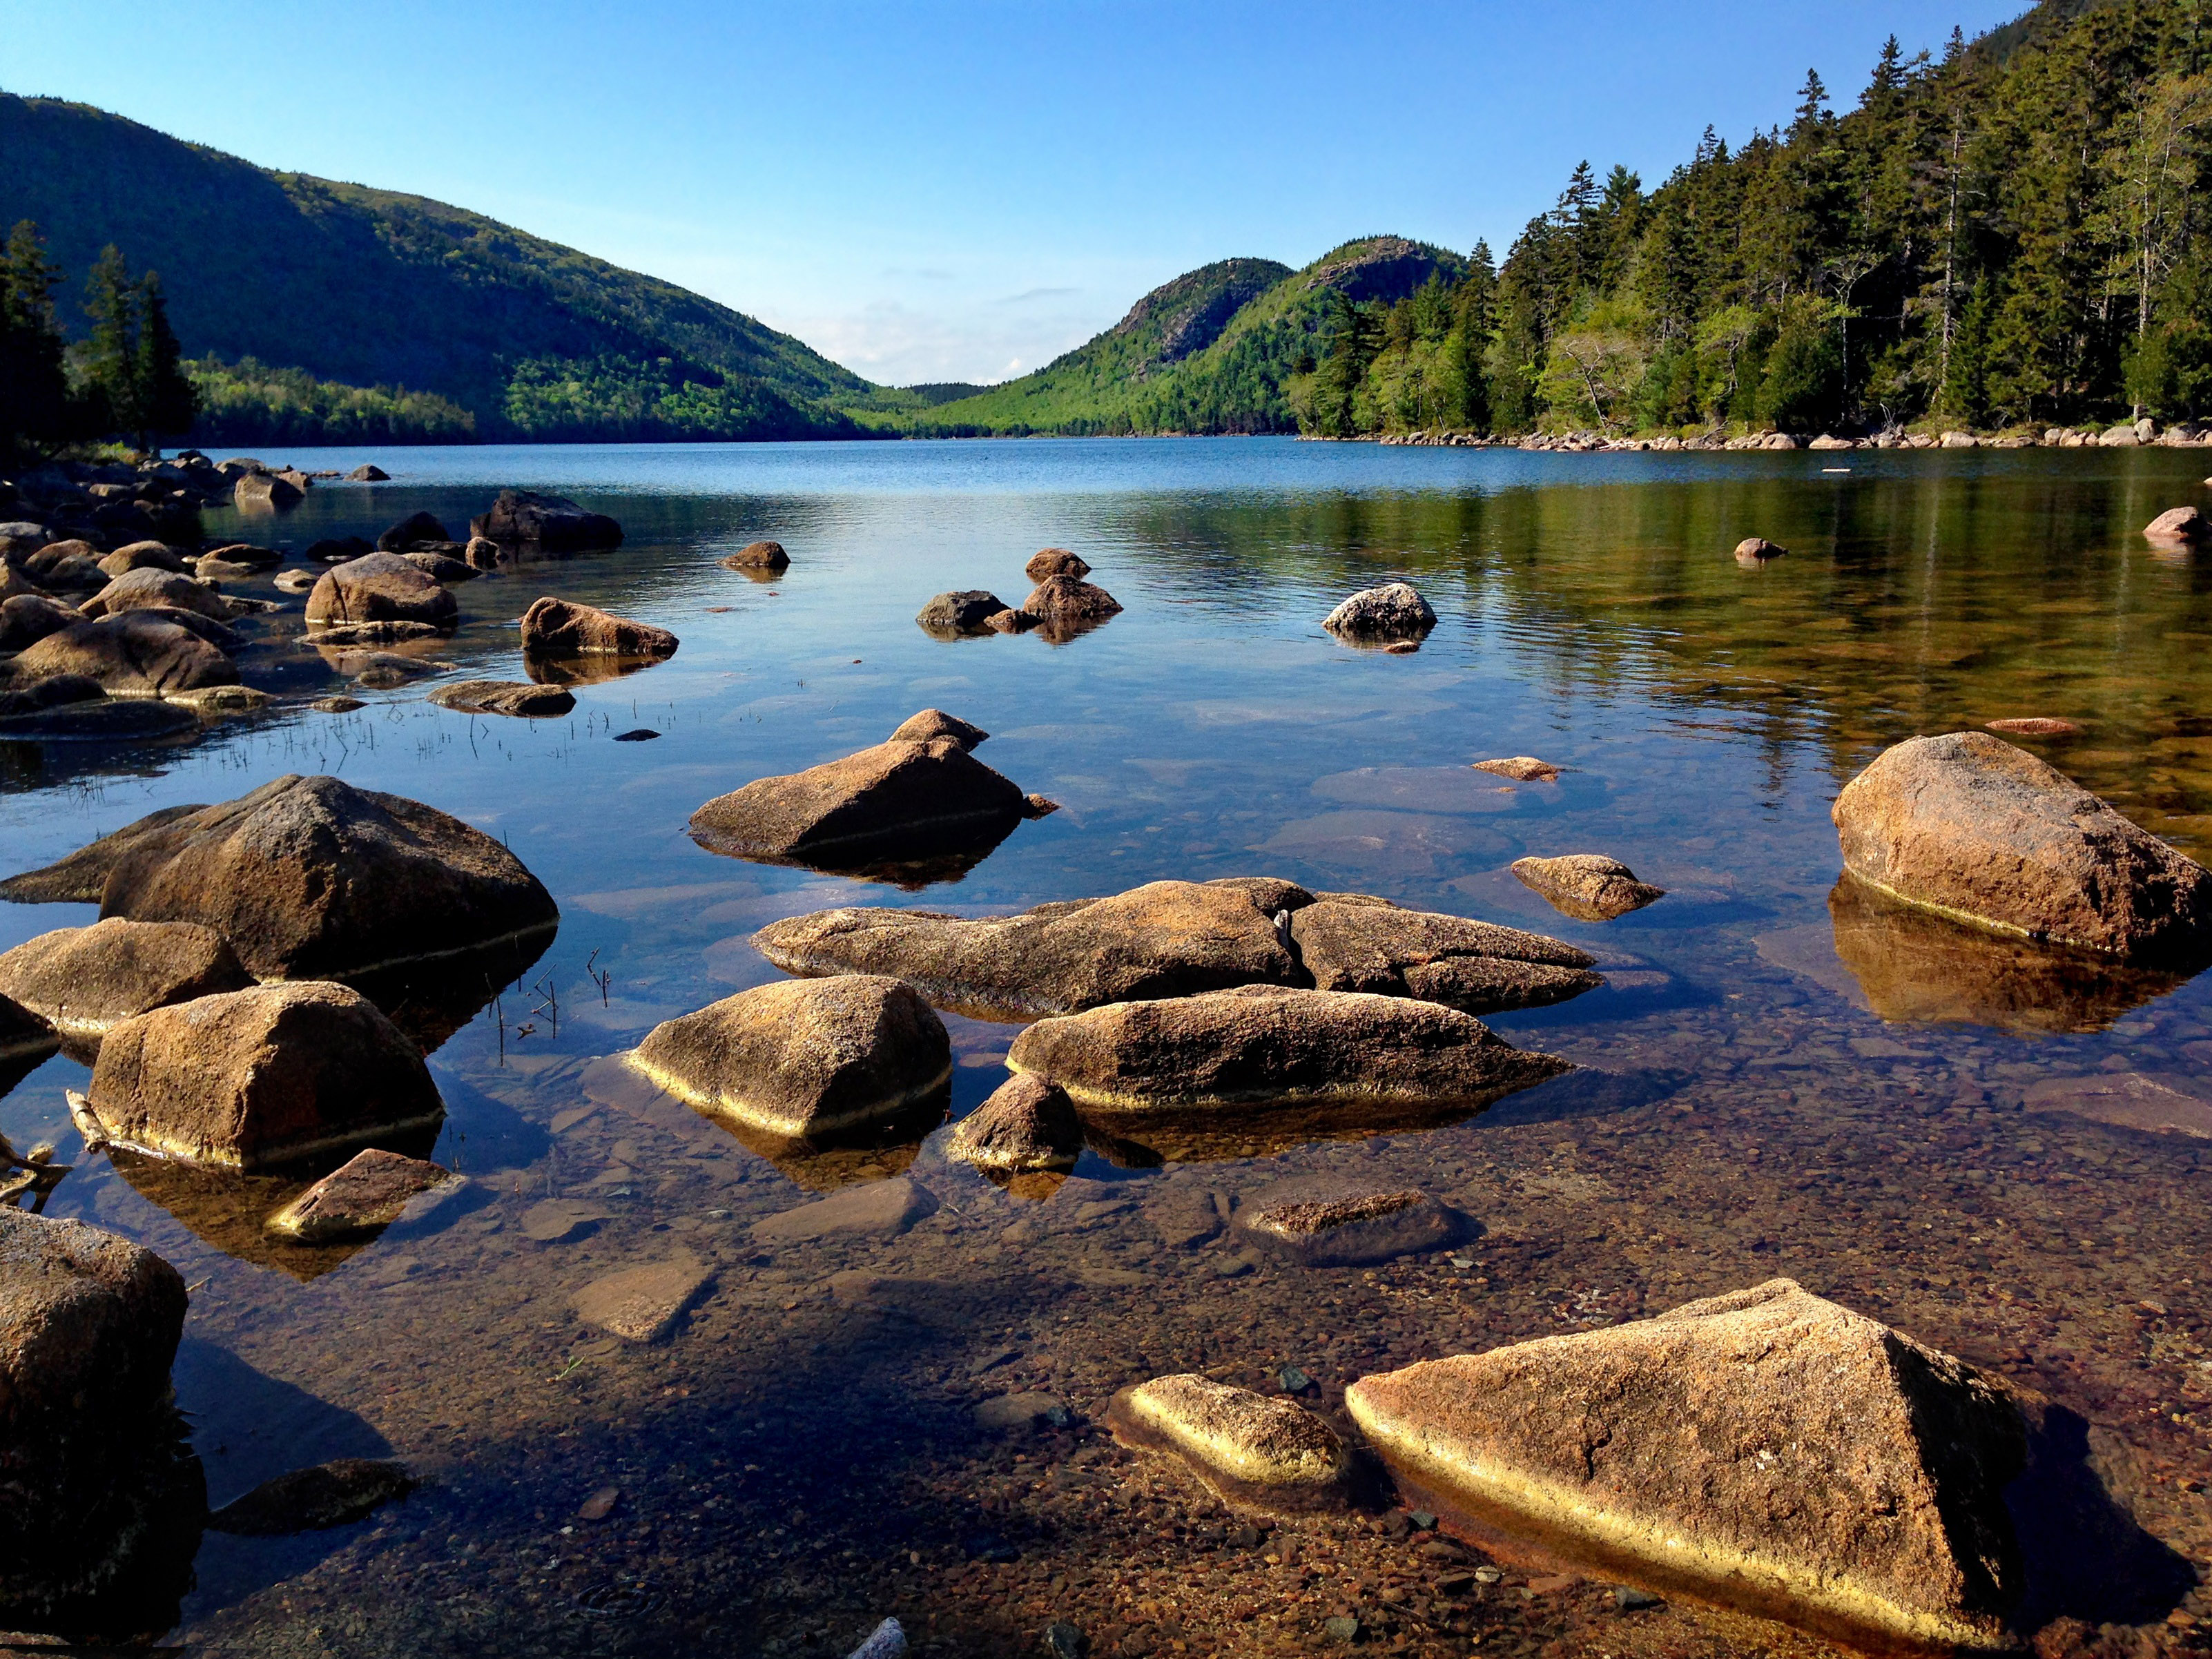 Landscape and scenic of mountains and lake at Acadia National Park.